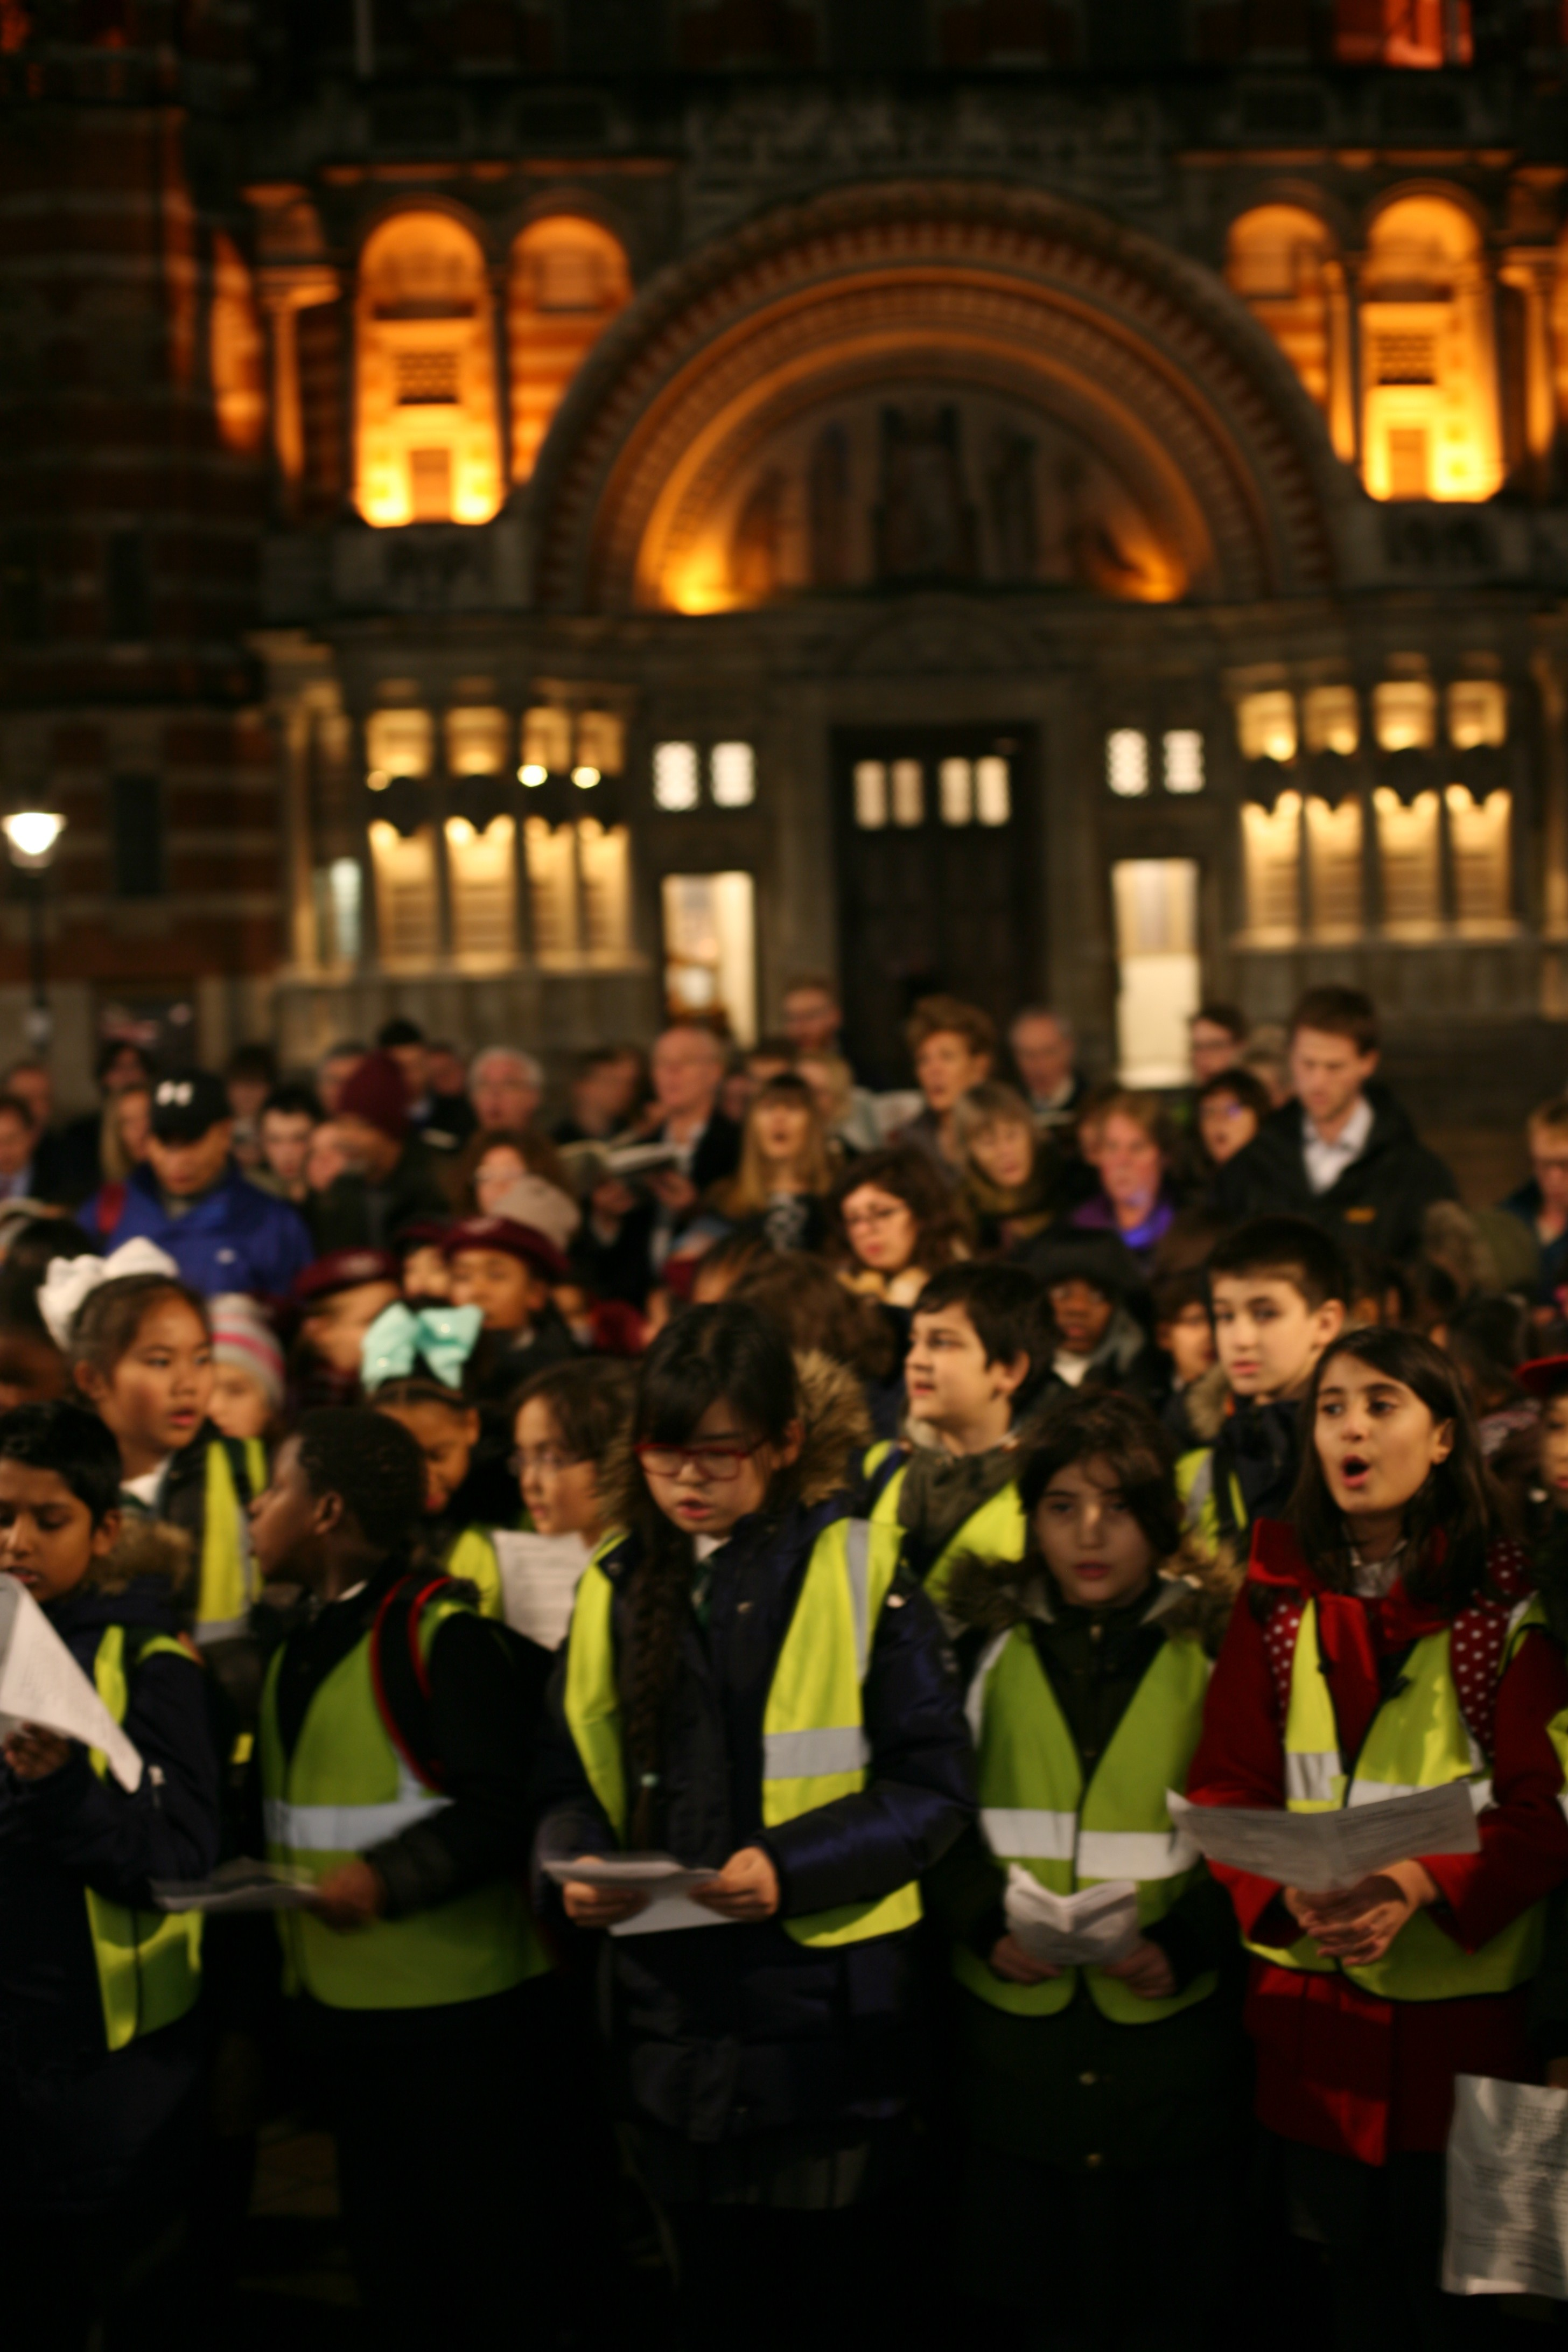 Outreach Children Sing Carols On Westminster Cathedral Piazza The Bach Choir The Uk S Finest Independent Choir Based In London